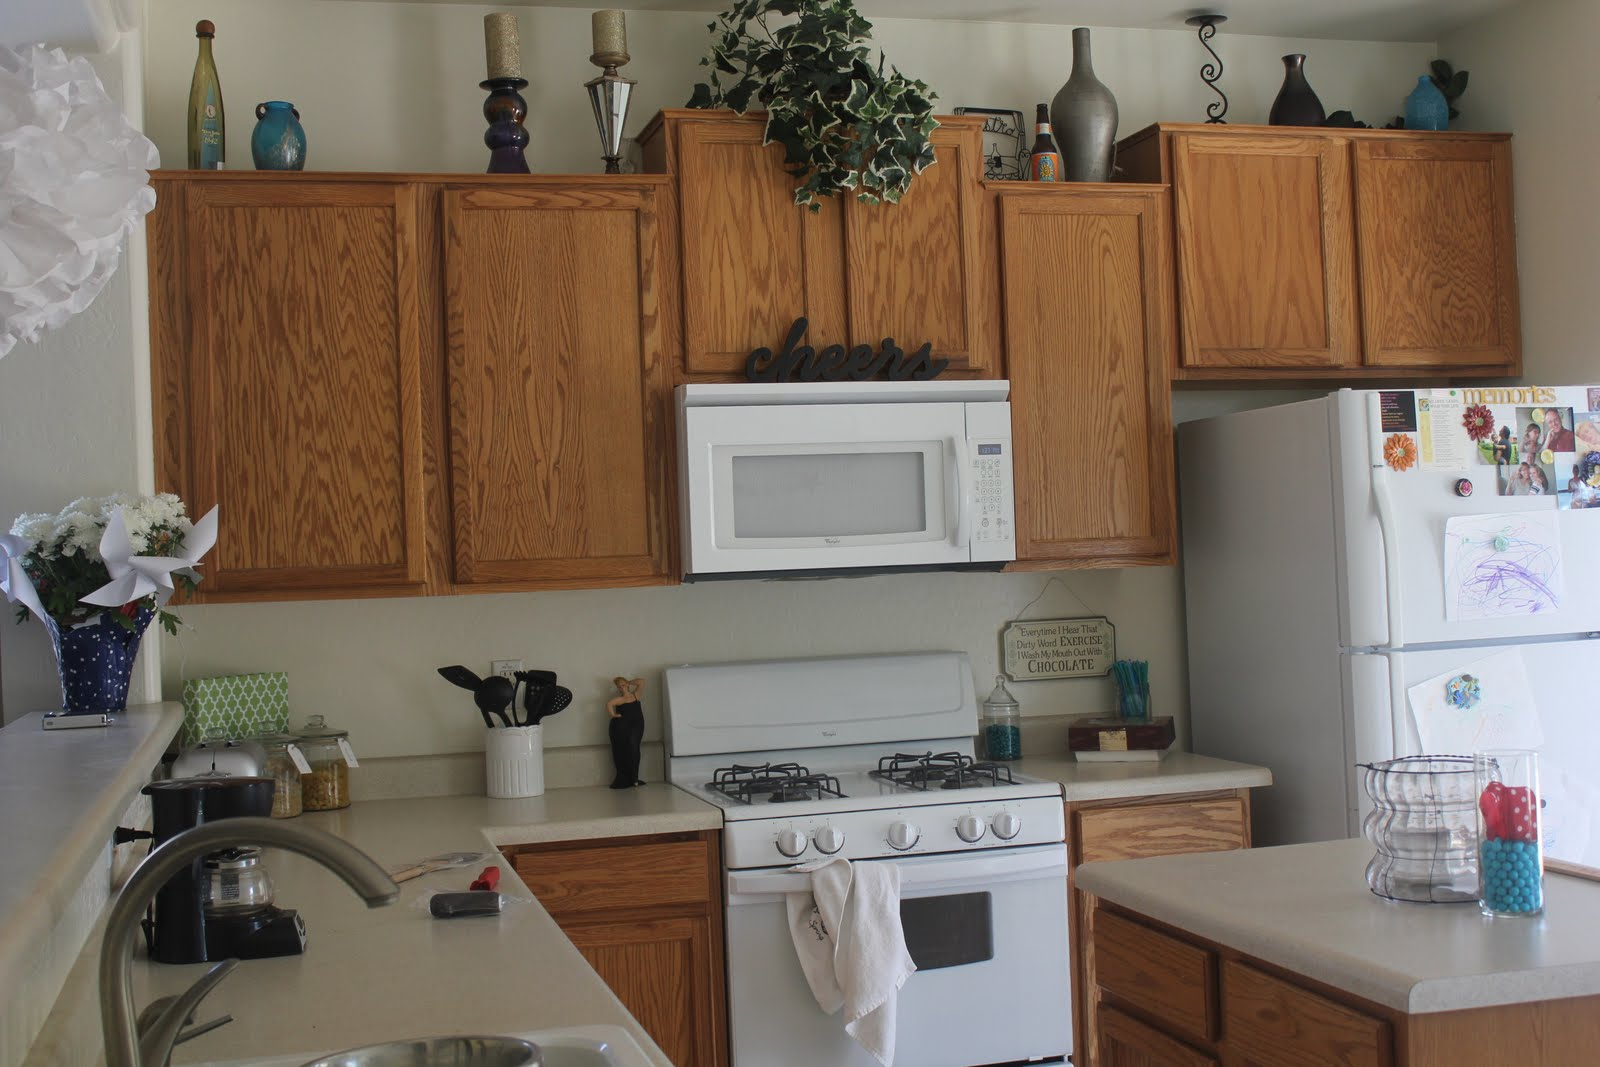 Kitchen Cabinet Makeover : Kitchen cabinet makeover for $170